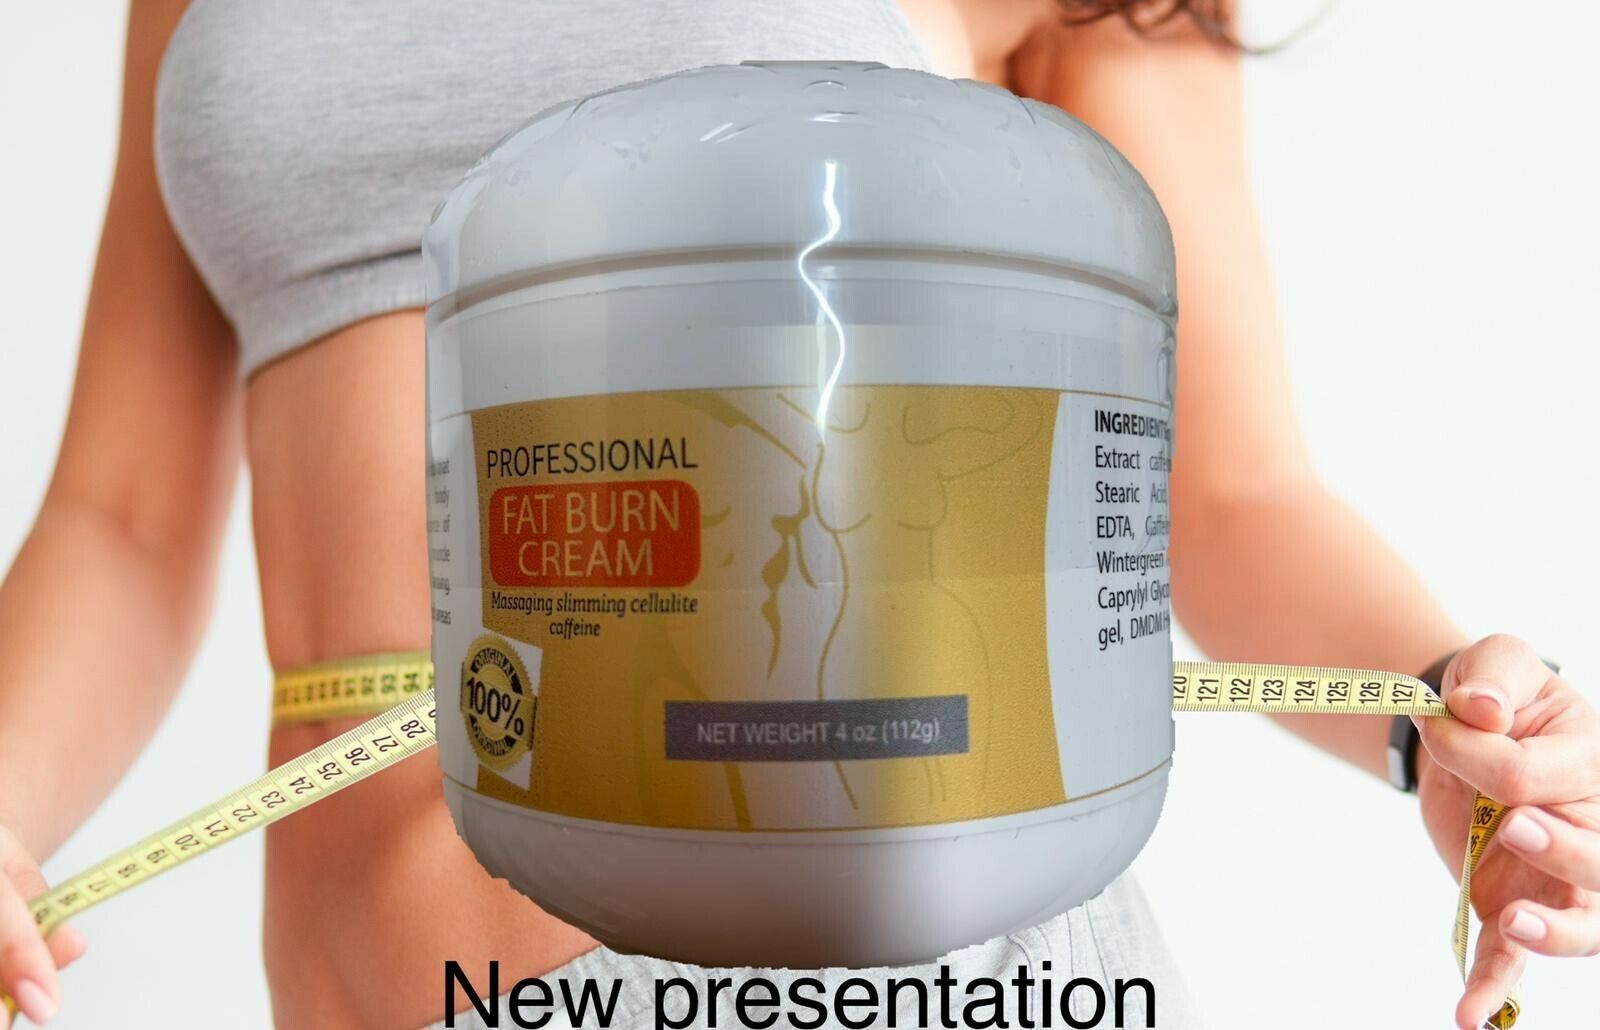 Cellulite Removal Cream Fat Burning Slim Cream Tight Muscle Weight Loss 113 GR  1